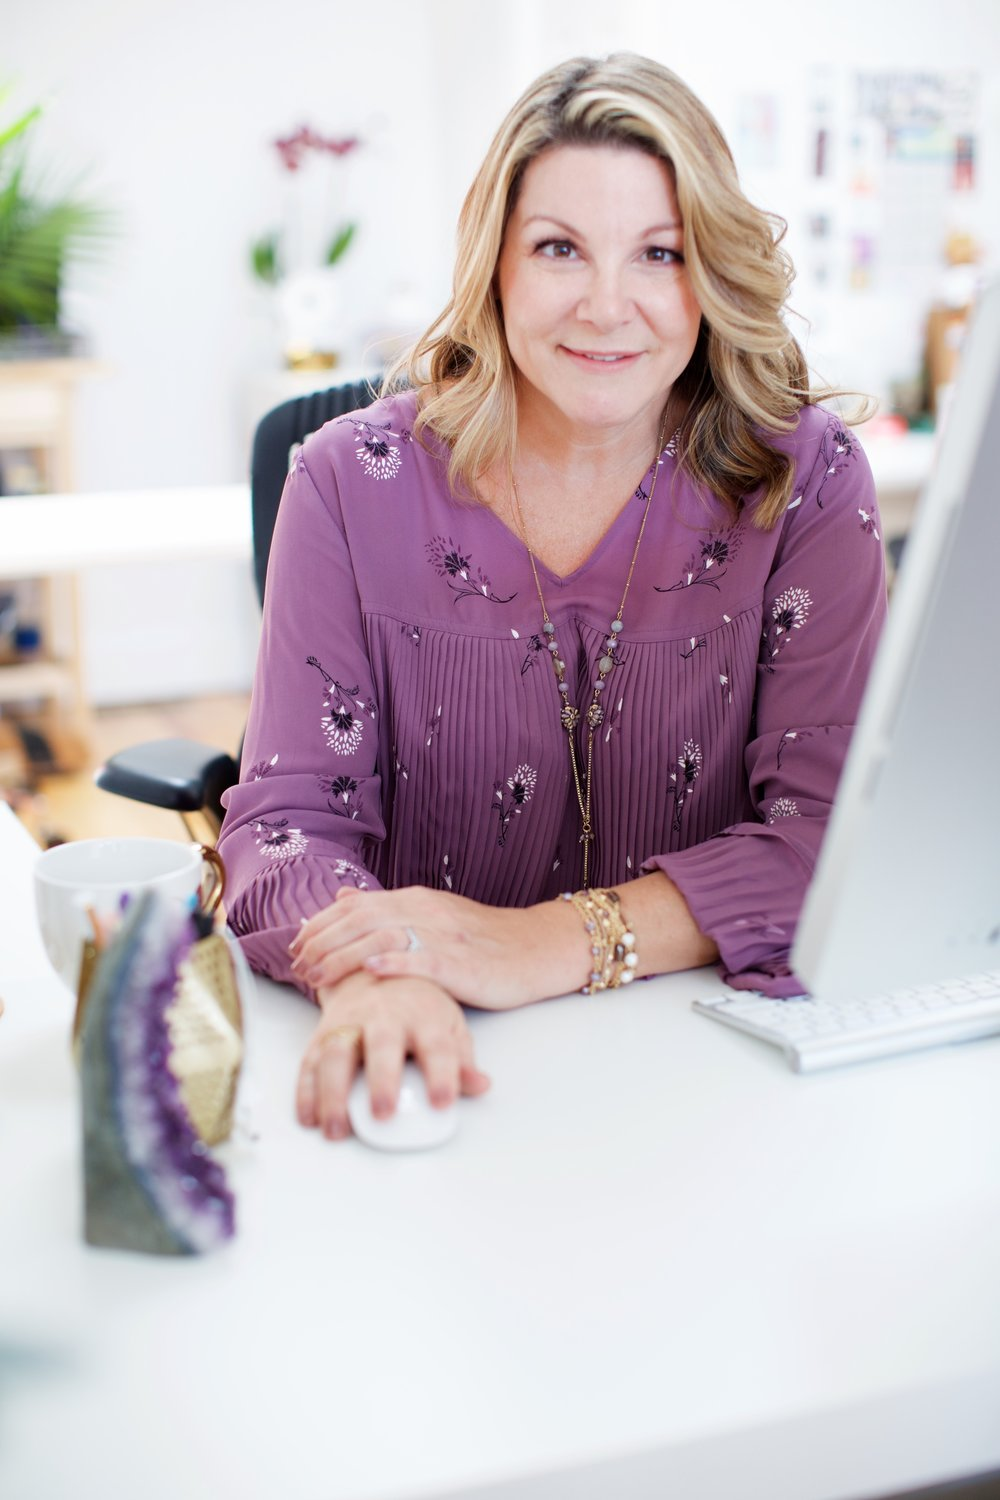 Hellooo! I'm Gina Lauria Daschbach, and I am really looking forward to connecting with you. I love to work with mission driven businesses ready to stand out from the crowded online spaces where everyone is using the same marketing tactics. If you are excited to put your brand stories into the hands of your audience to build loyal fans and followers and be remembered, I urge you to book a call with a member of the Perooz Publishing Team.  We'll take you through the inkCREDIBILITY process, strategize about your content and distribution strategies and answer every question you have.    Book a free Strategy and Vision Call